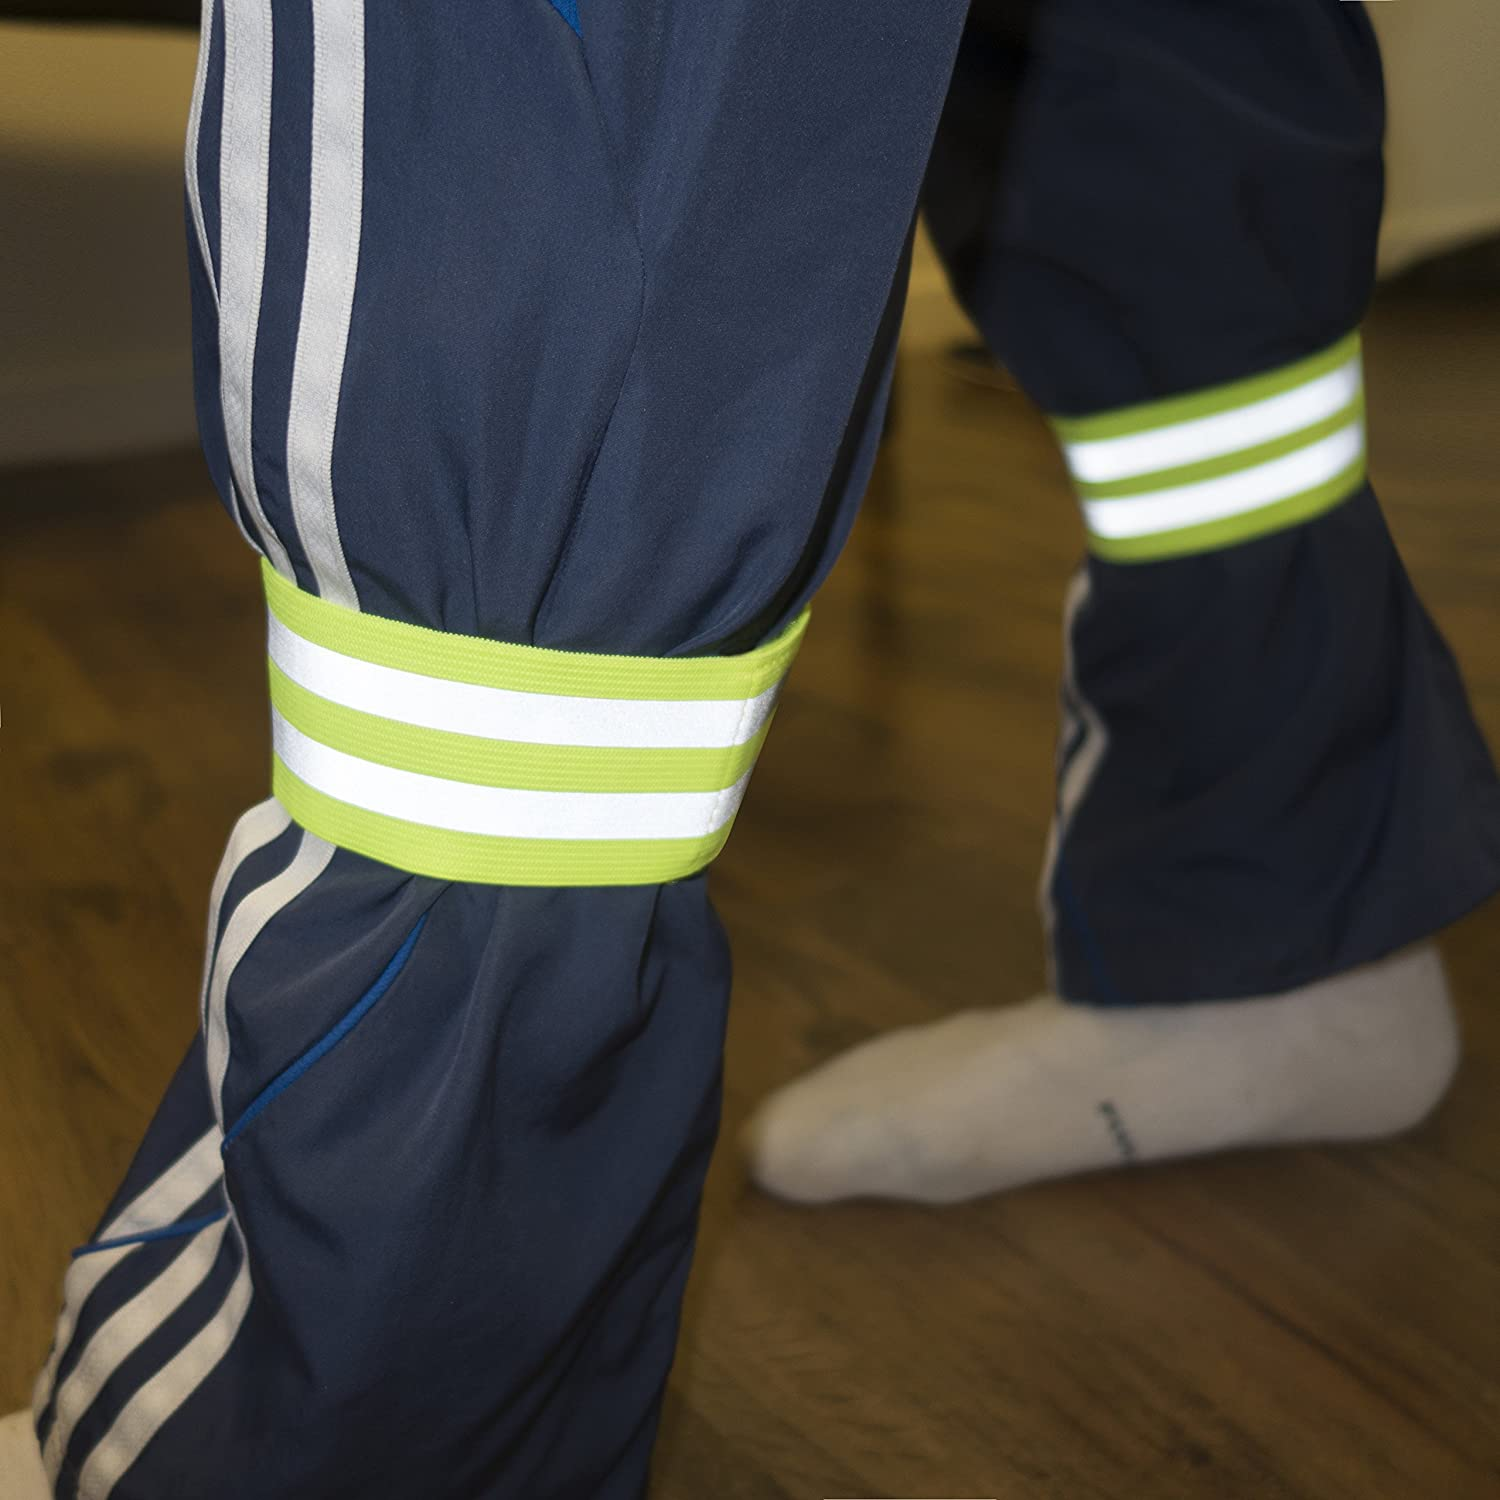 Accessories for Sports//Running Gear 4 Bands//2 Pairs | High Visibility and Safety for Jogging//Cycling//Walking etc Reflective Ankle Bands Armband Works as Wristbands Leg Straps